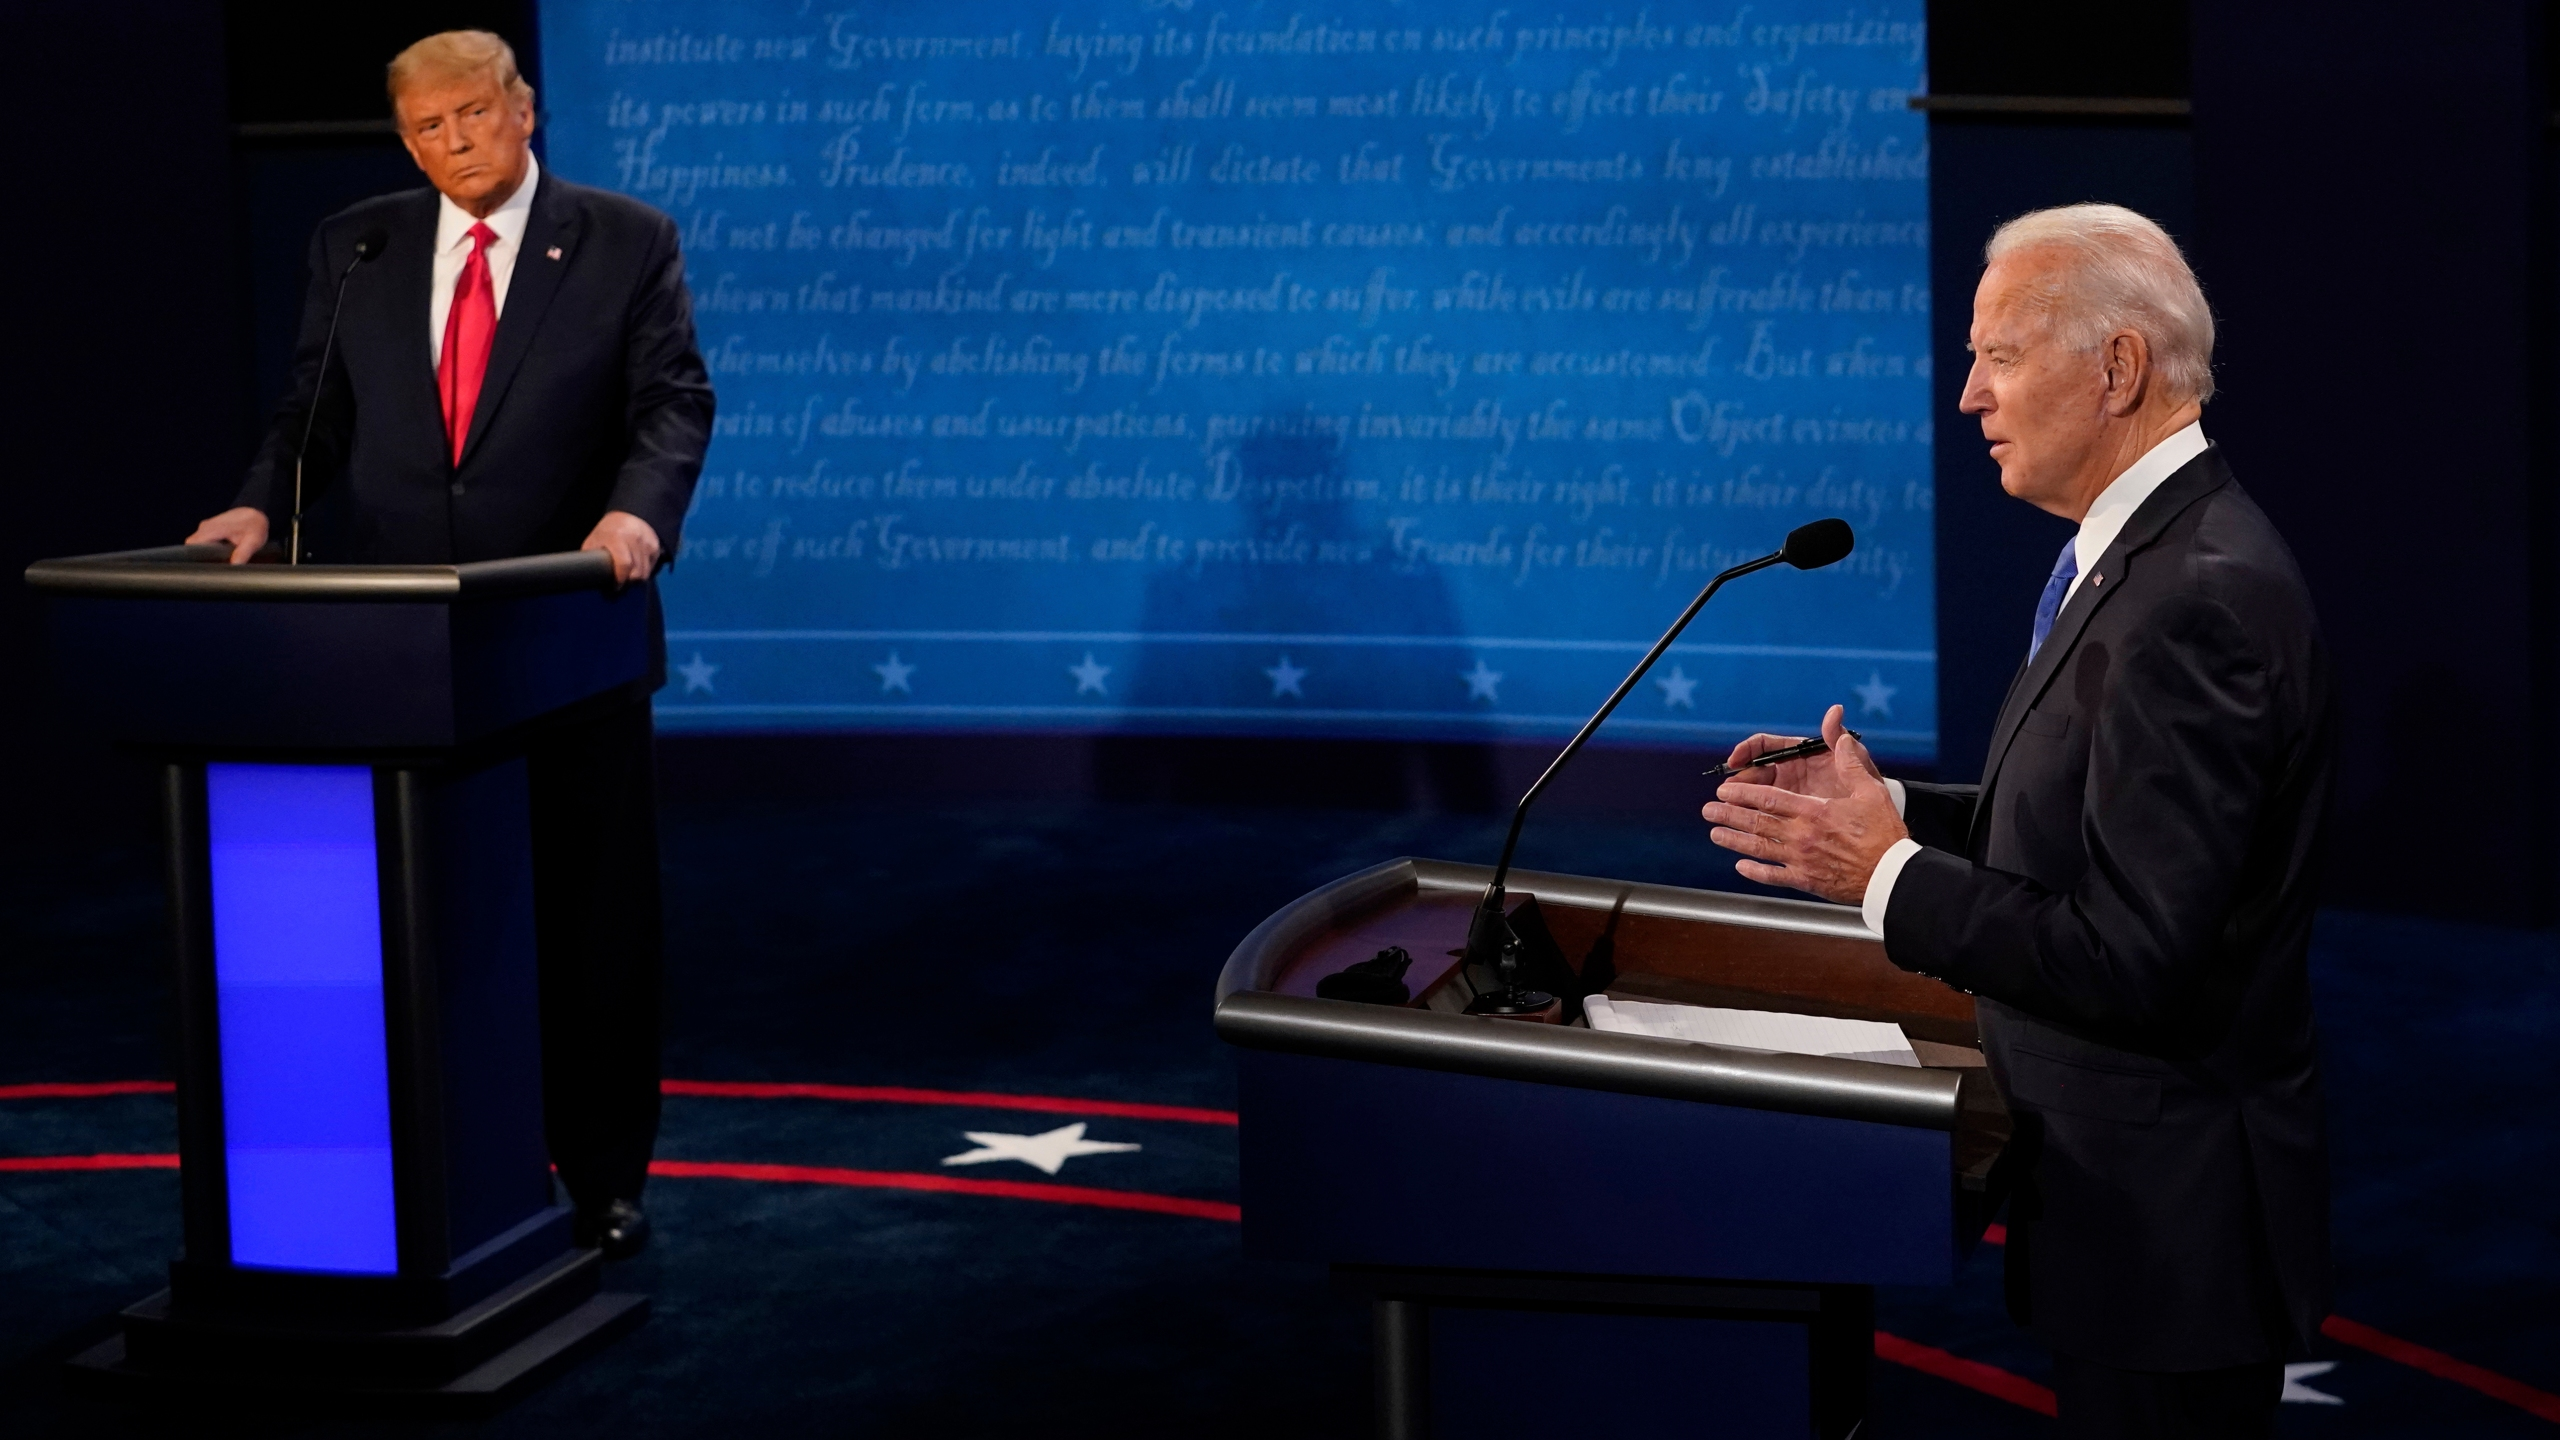 Democratic presidential candidate former Vice President Joe Biden answers a question as President Donald Trump listens during the second and final presidential debate Oct. 22, 2020, at Belmont University in Nashville, Tennessee. (Morry Gash / Associated Press)